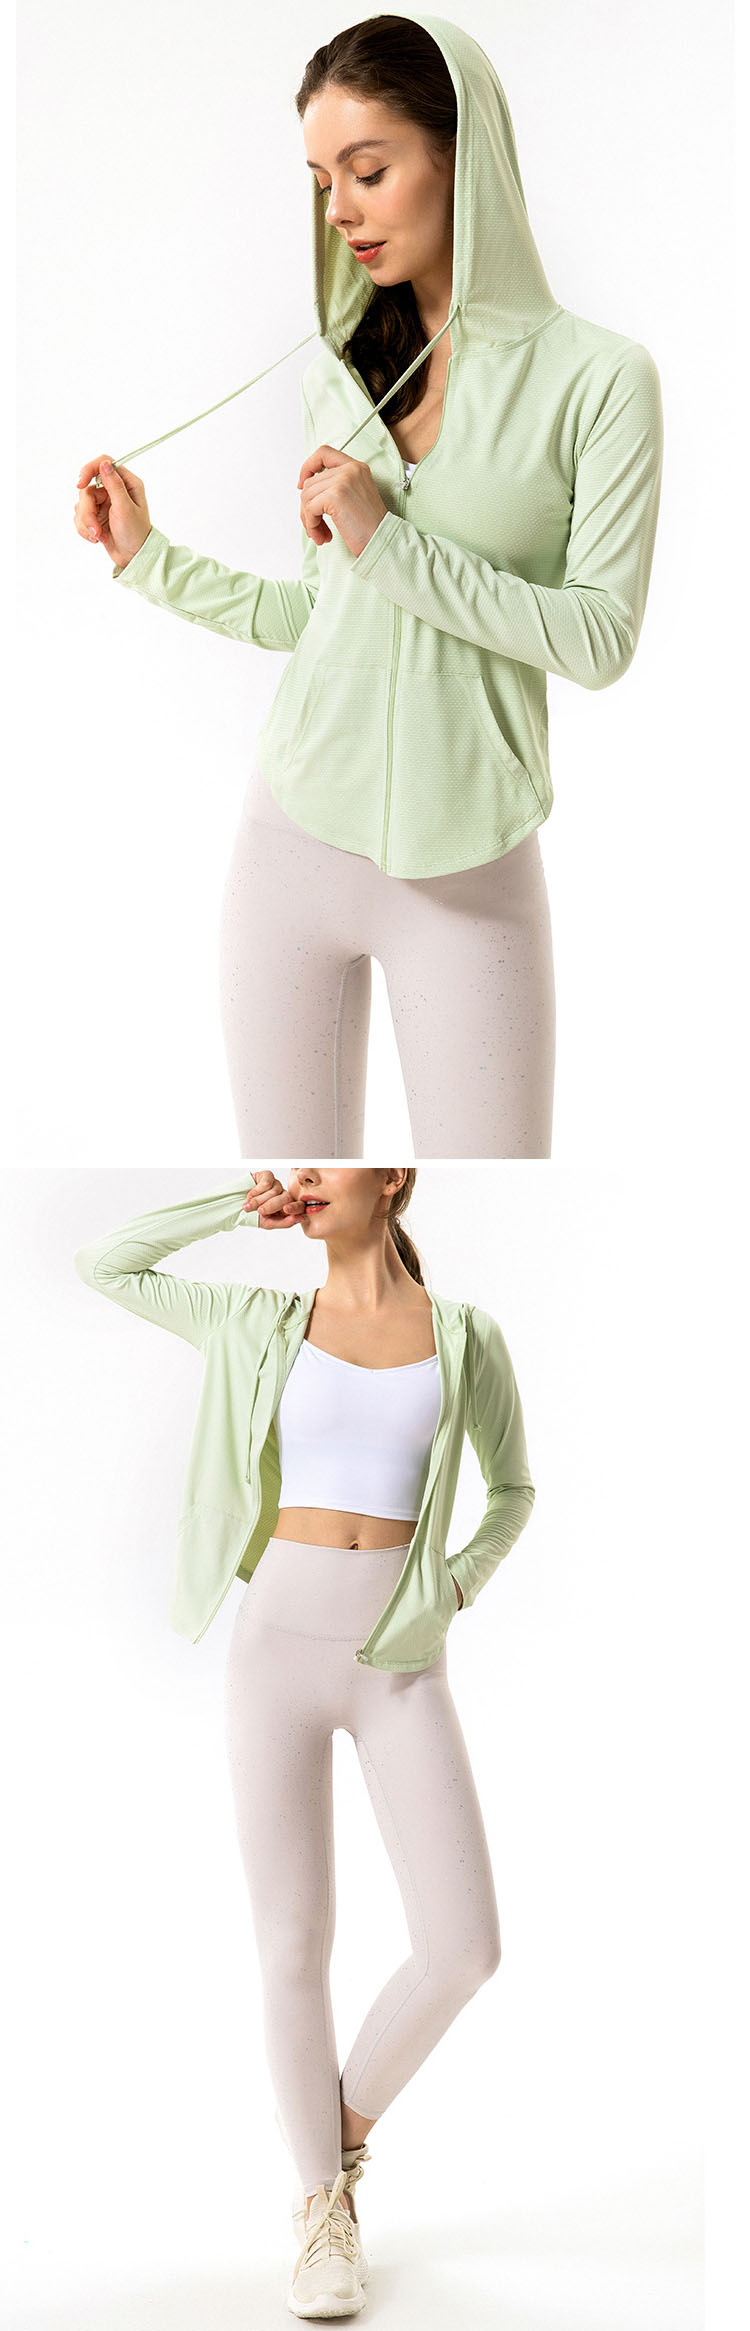 Zipper design, easy to put on and take off exercise, easy to release the restraint of exercise.